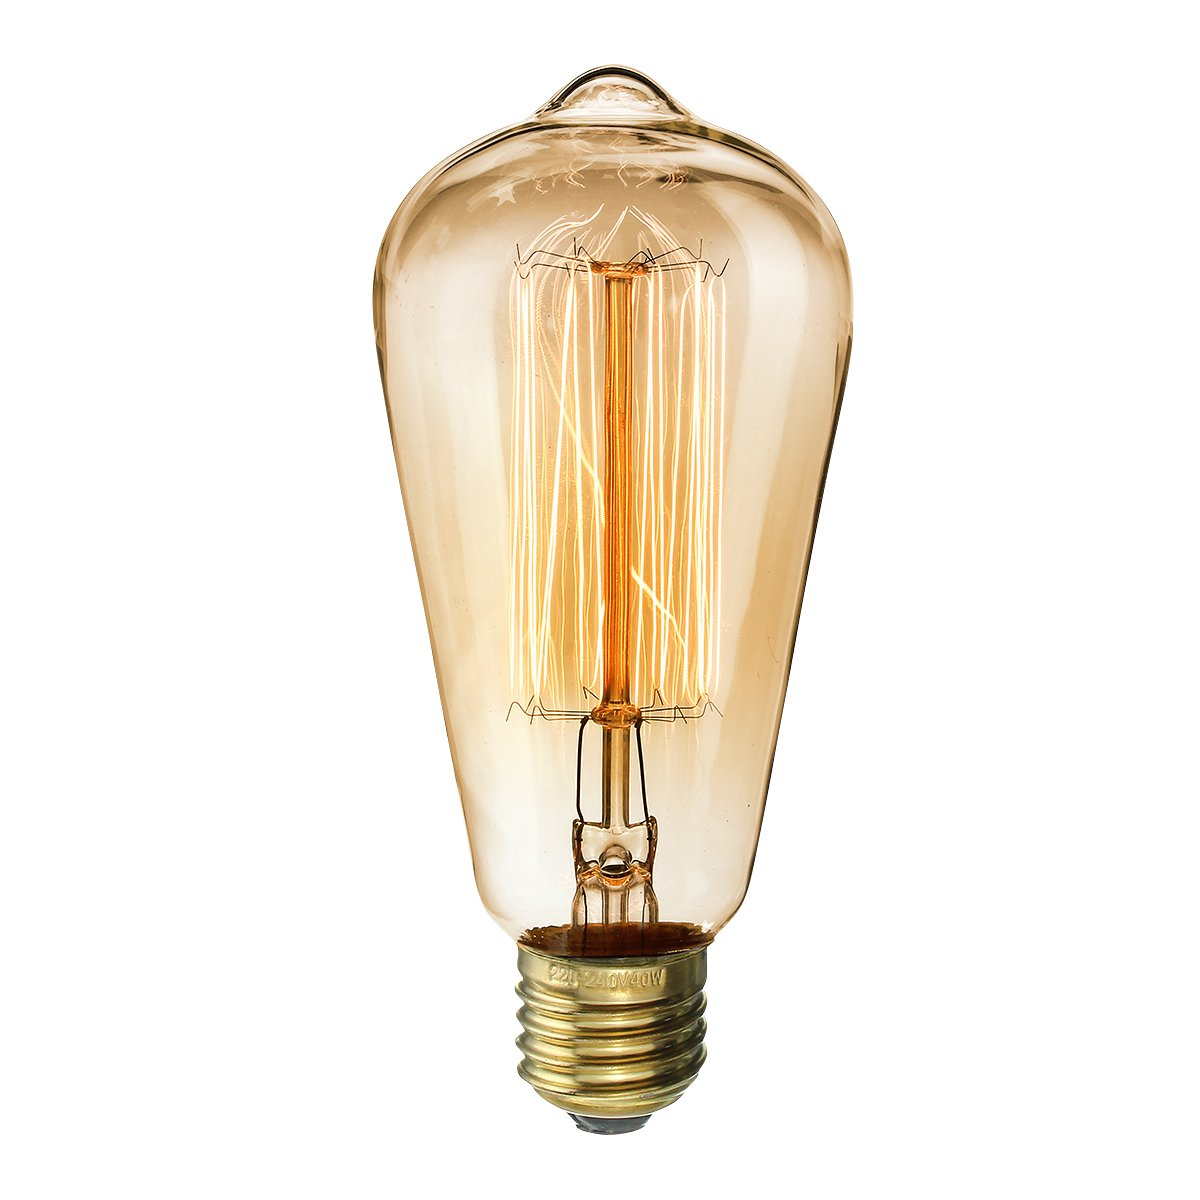 Kingso Vintage Light Bulb Retro Old Fashioned Edison Style Screw St64 19 Anchors Squirrel Cage